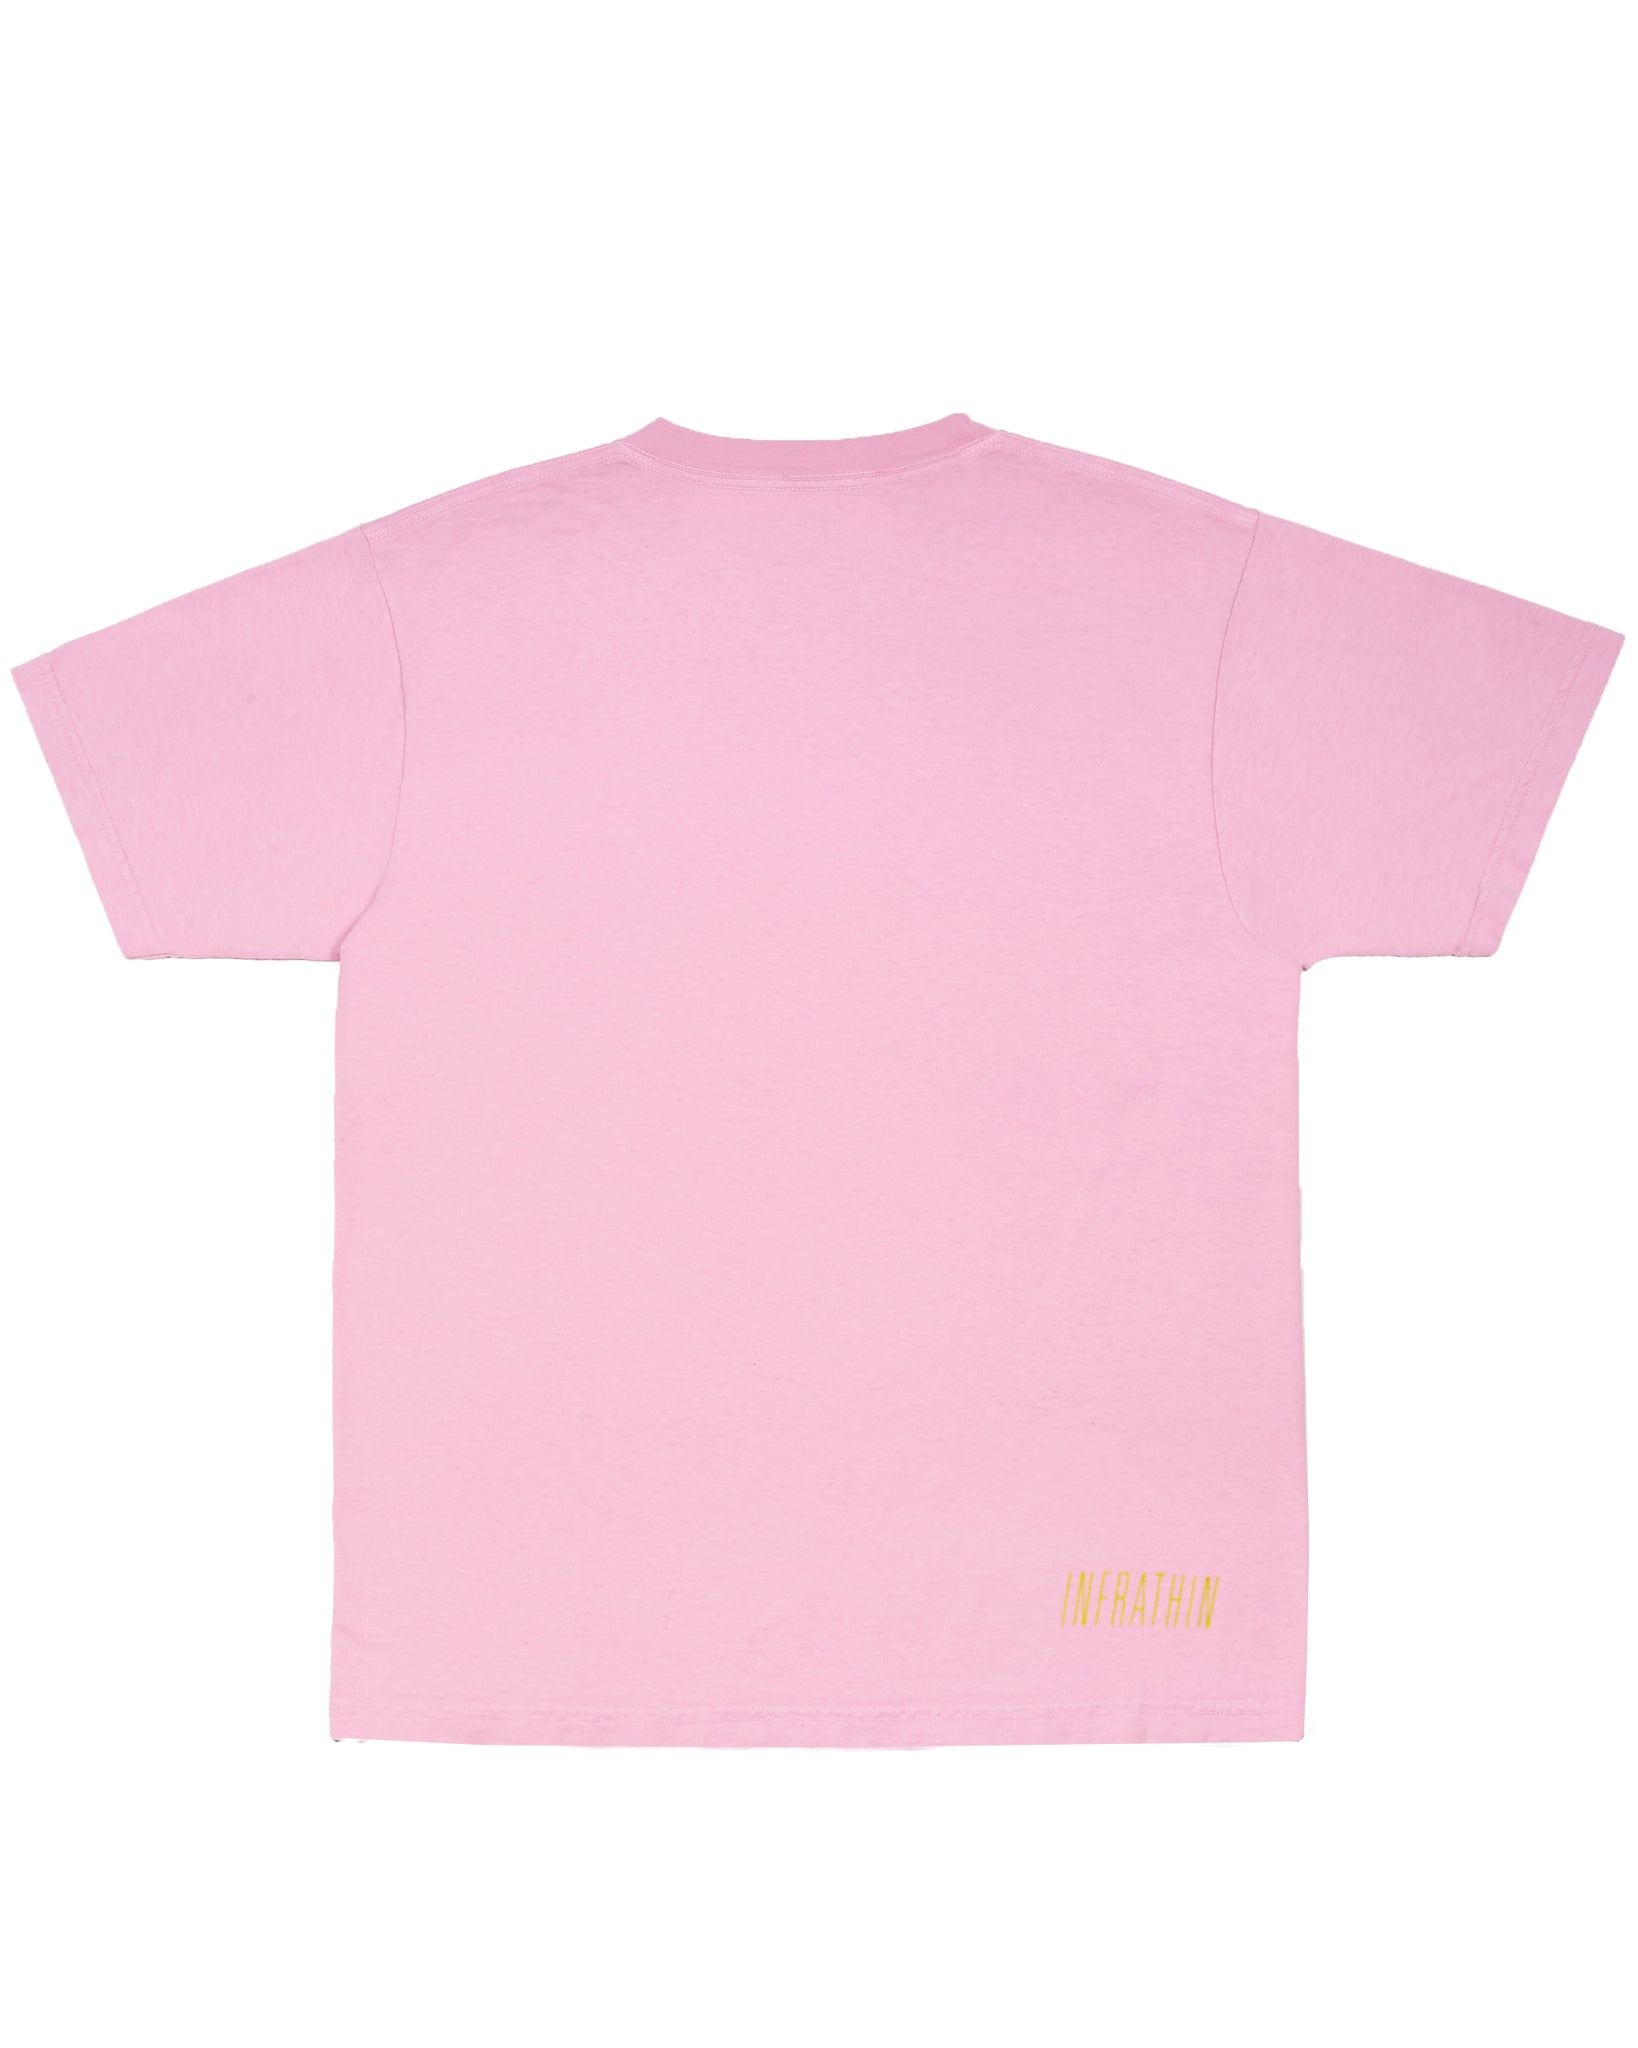 PINK T-SHIRT WITH AVOCADO